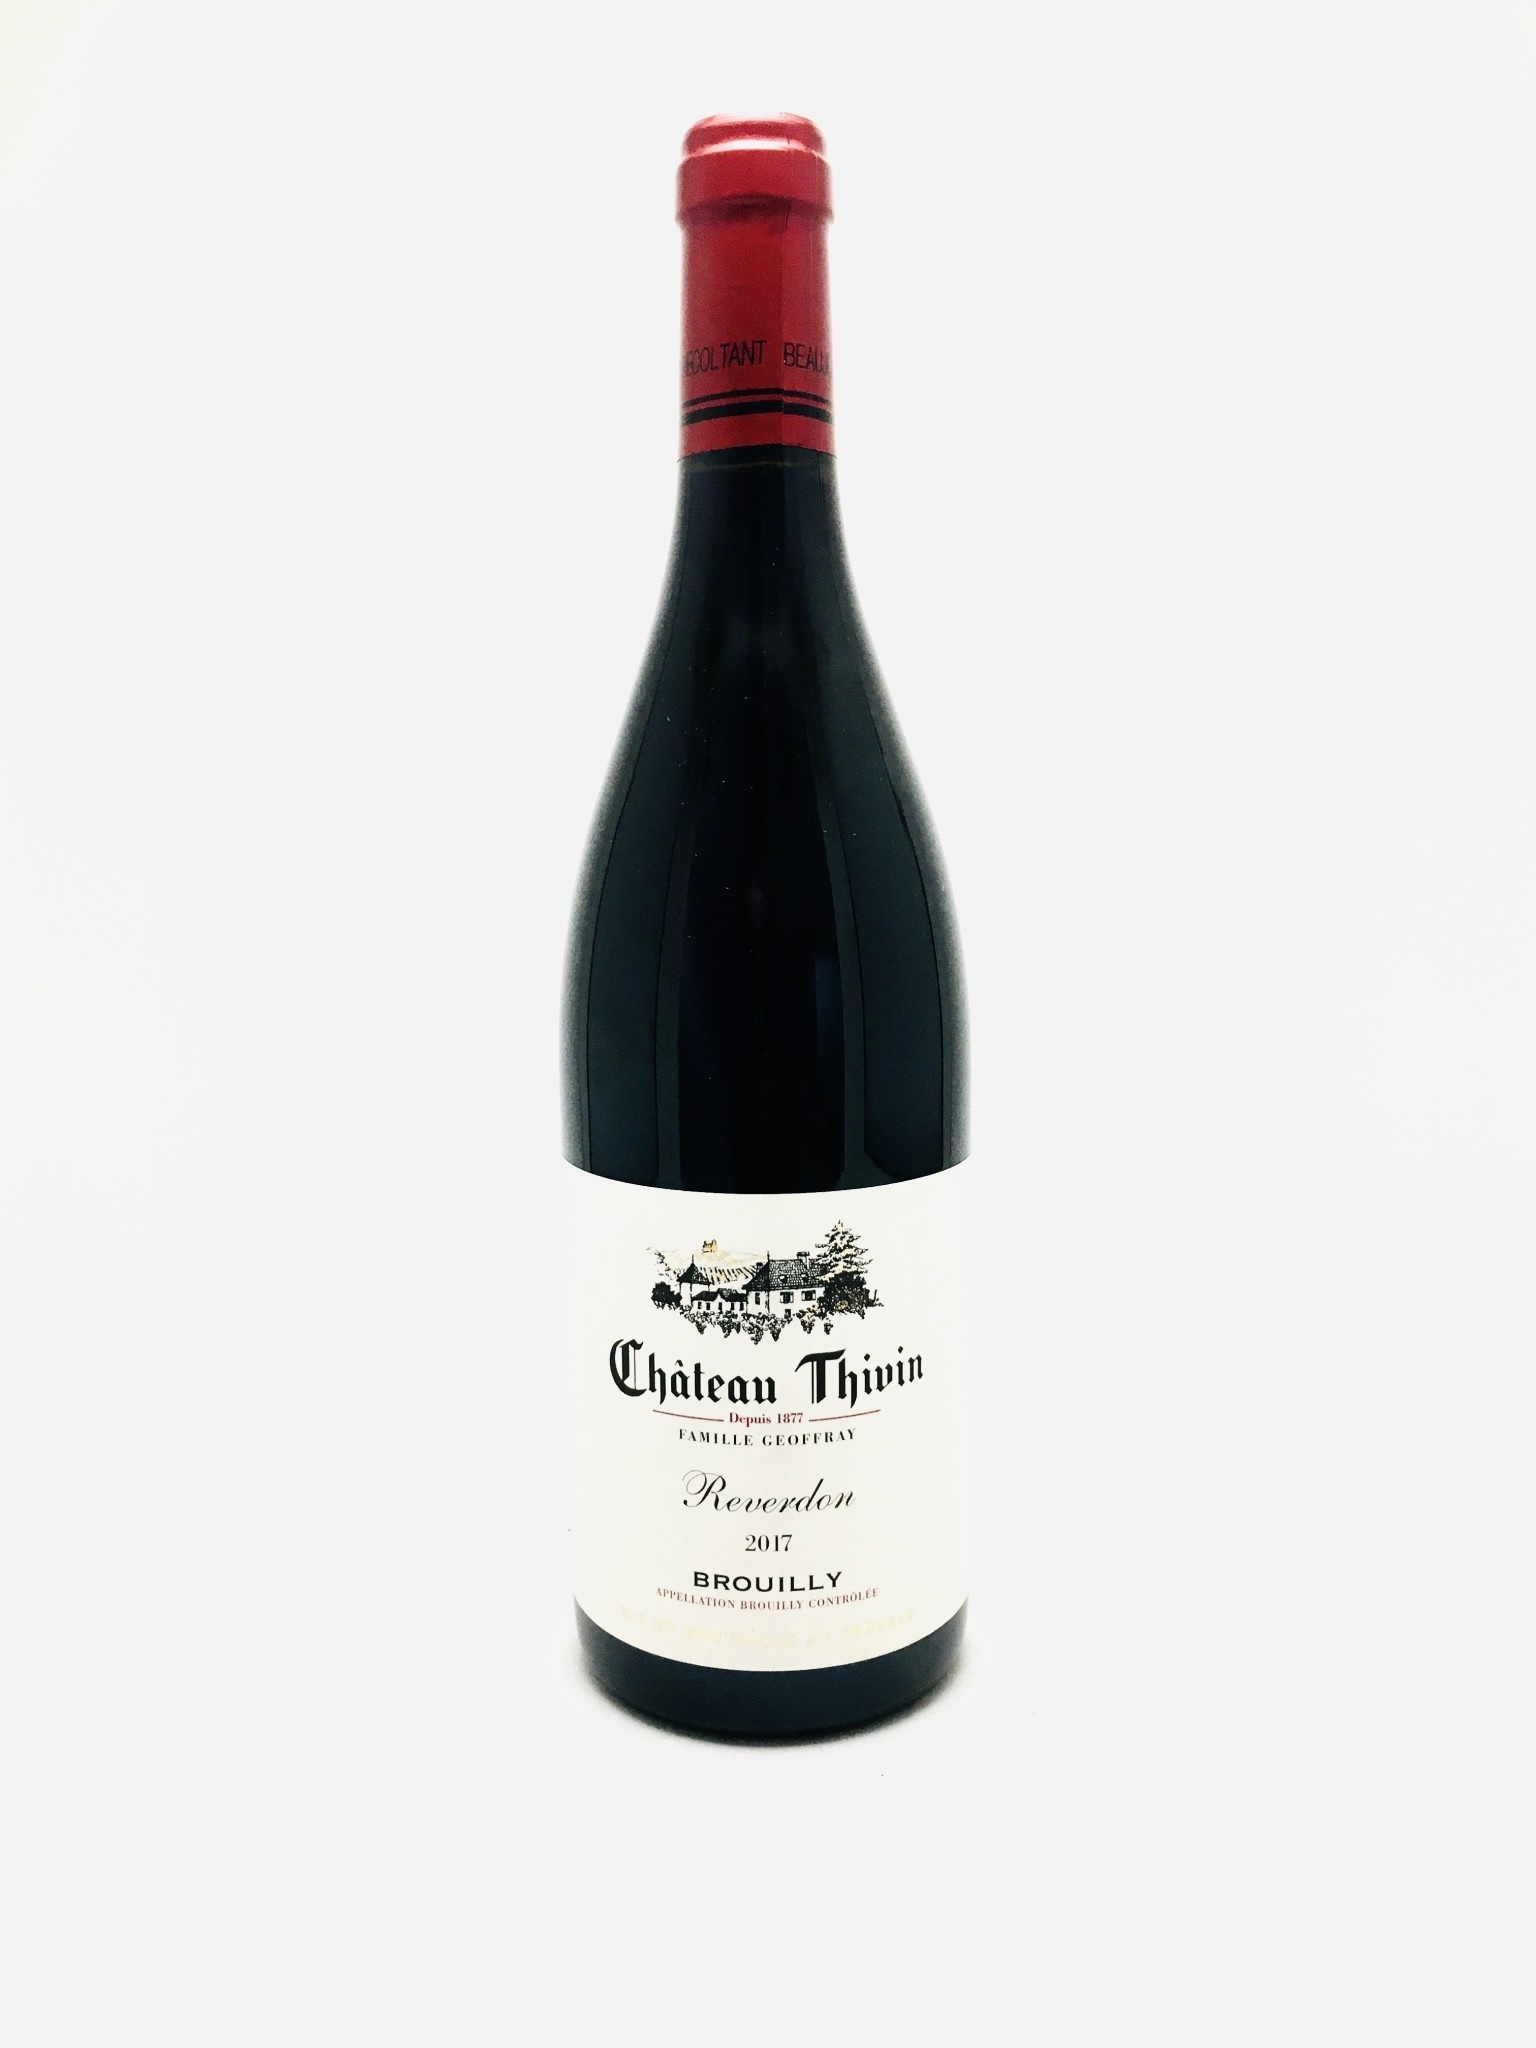 Chateau Thivin ''Reverdon'' Brouilly France 2017